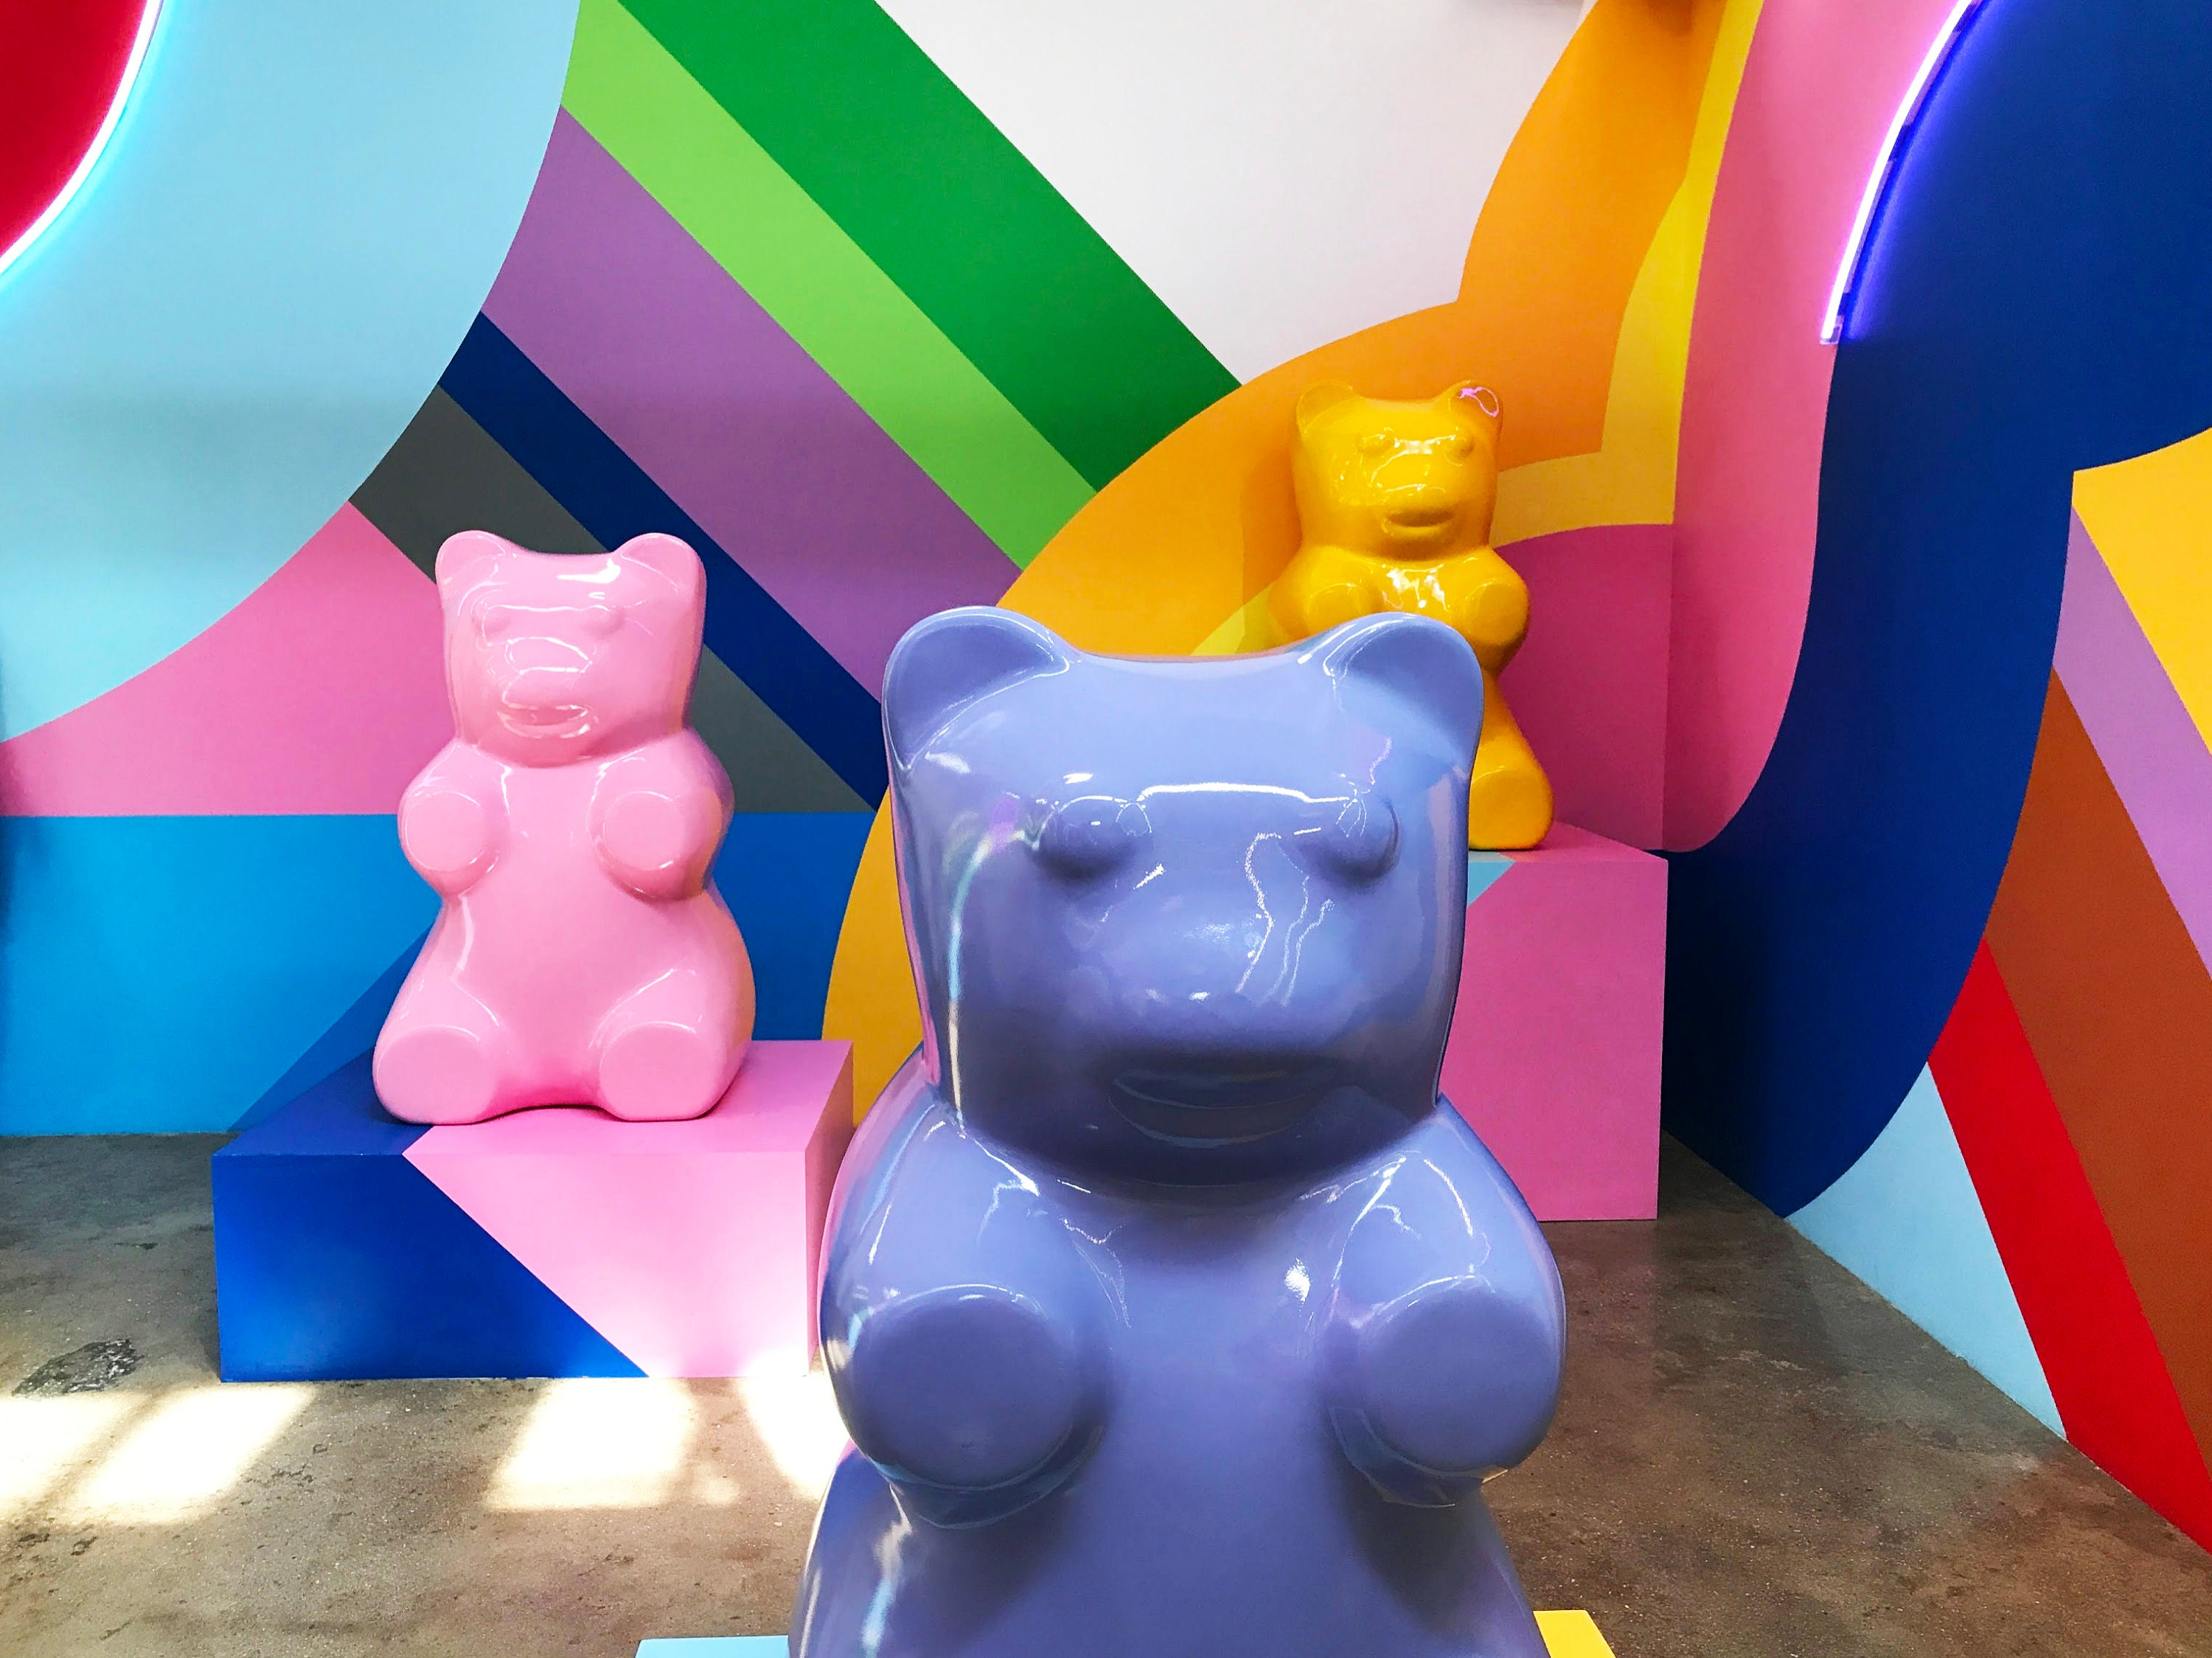 One of my favorite spaces- The gummy bear room